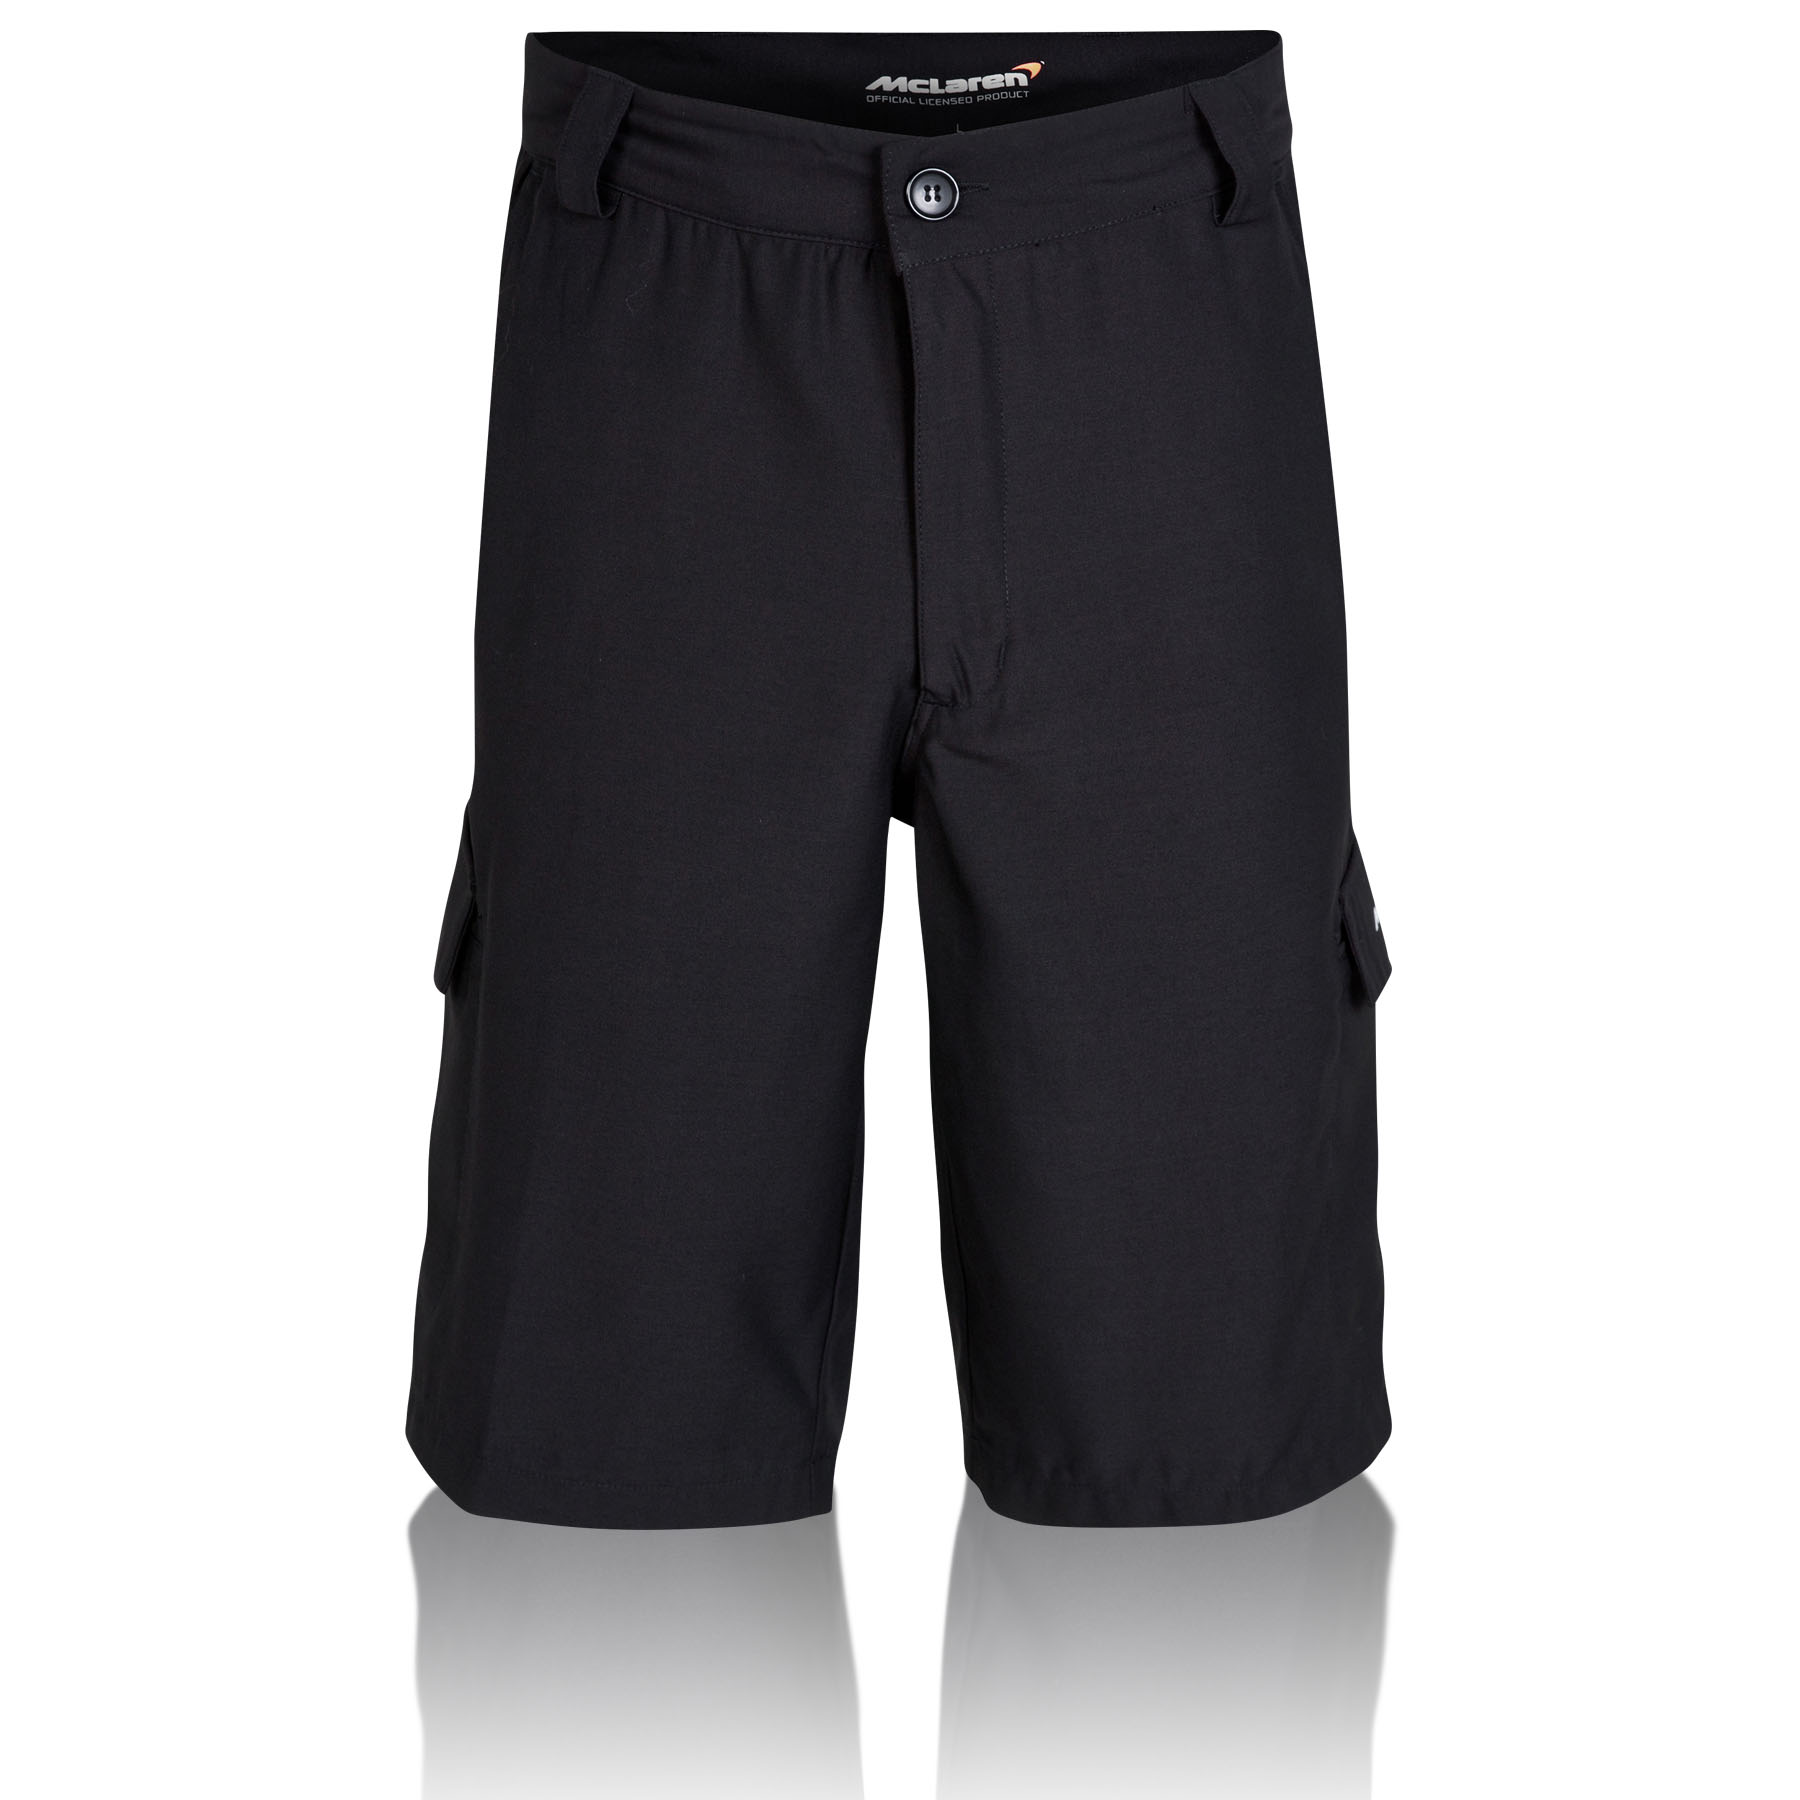 McLaren Mercedes 2014 Team Shorts